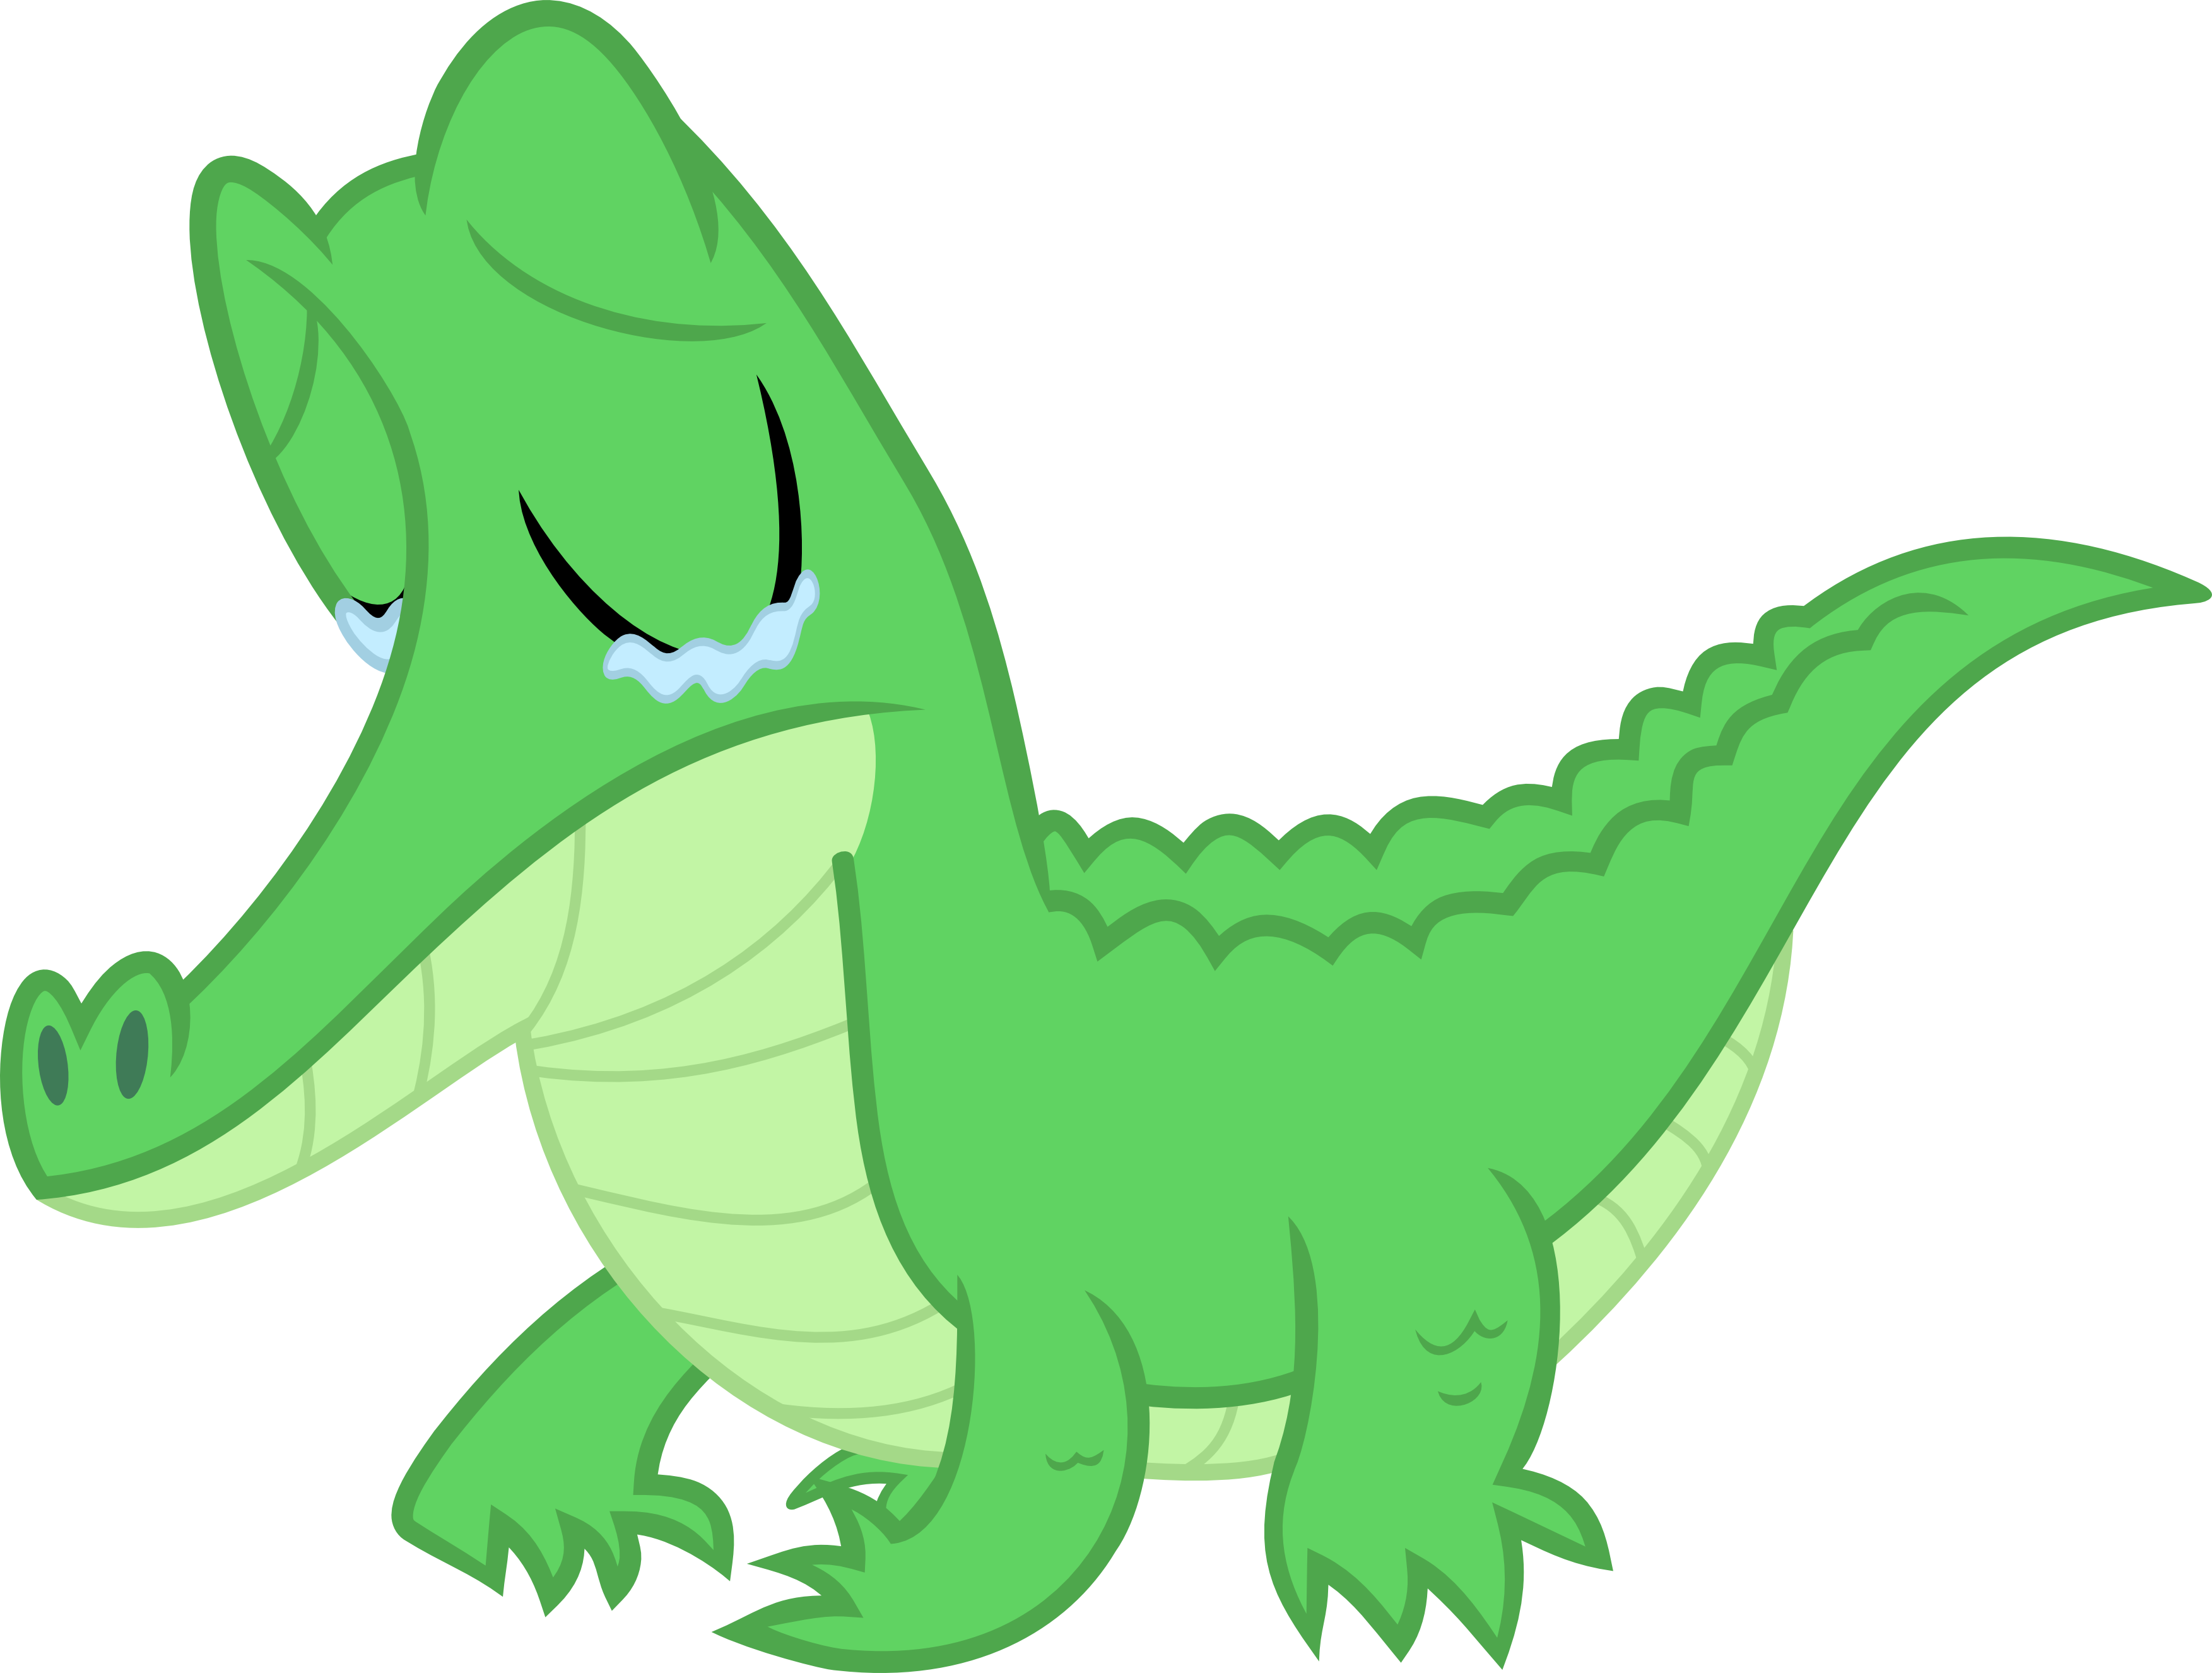 A little gator by. Sad animals png png royalty free stock